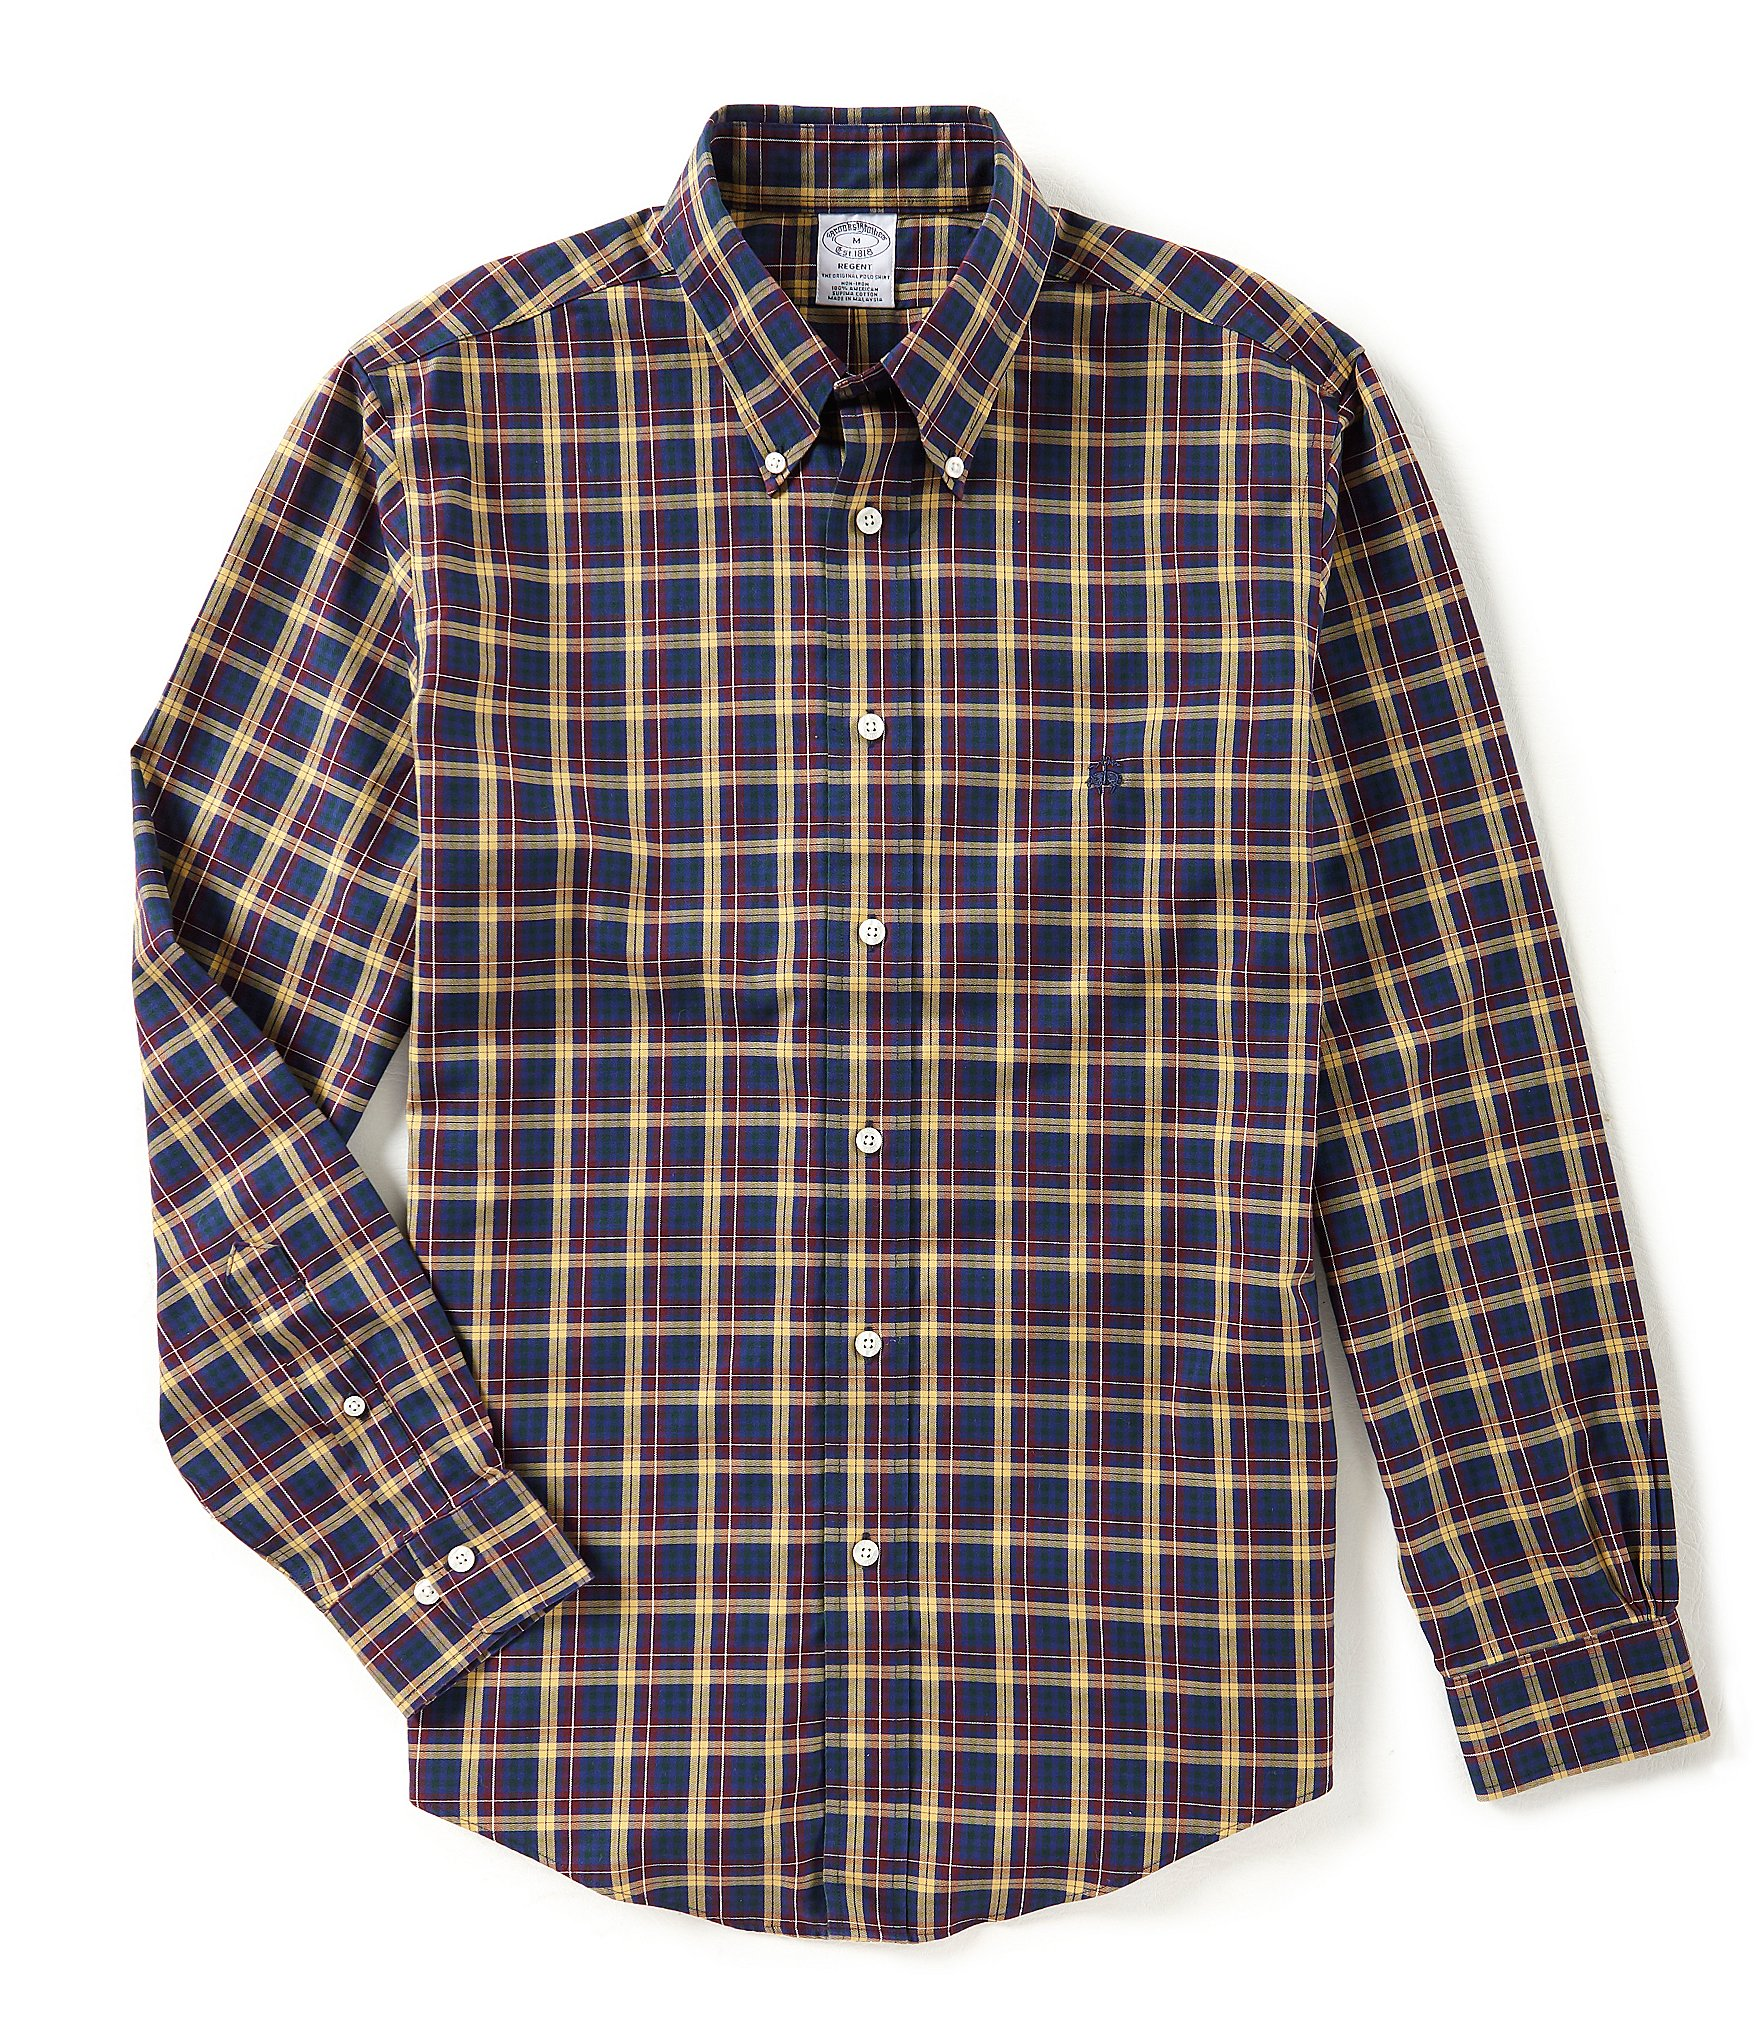 Brooks brothers non iron regent fit dual tartan plaid long for Brooks brothers non iron shirt review